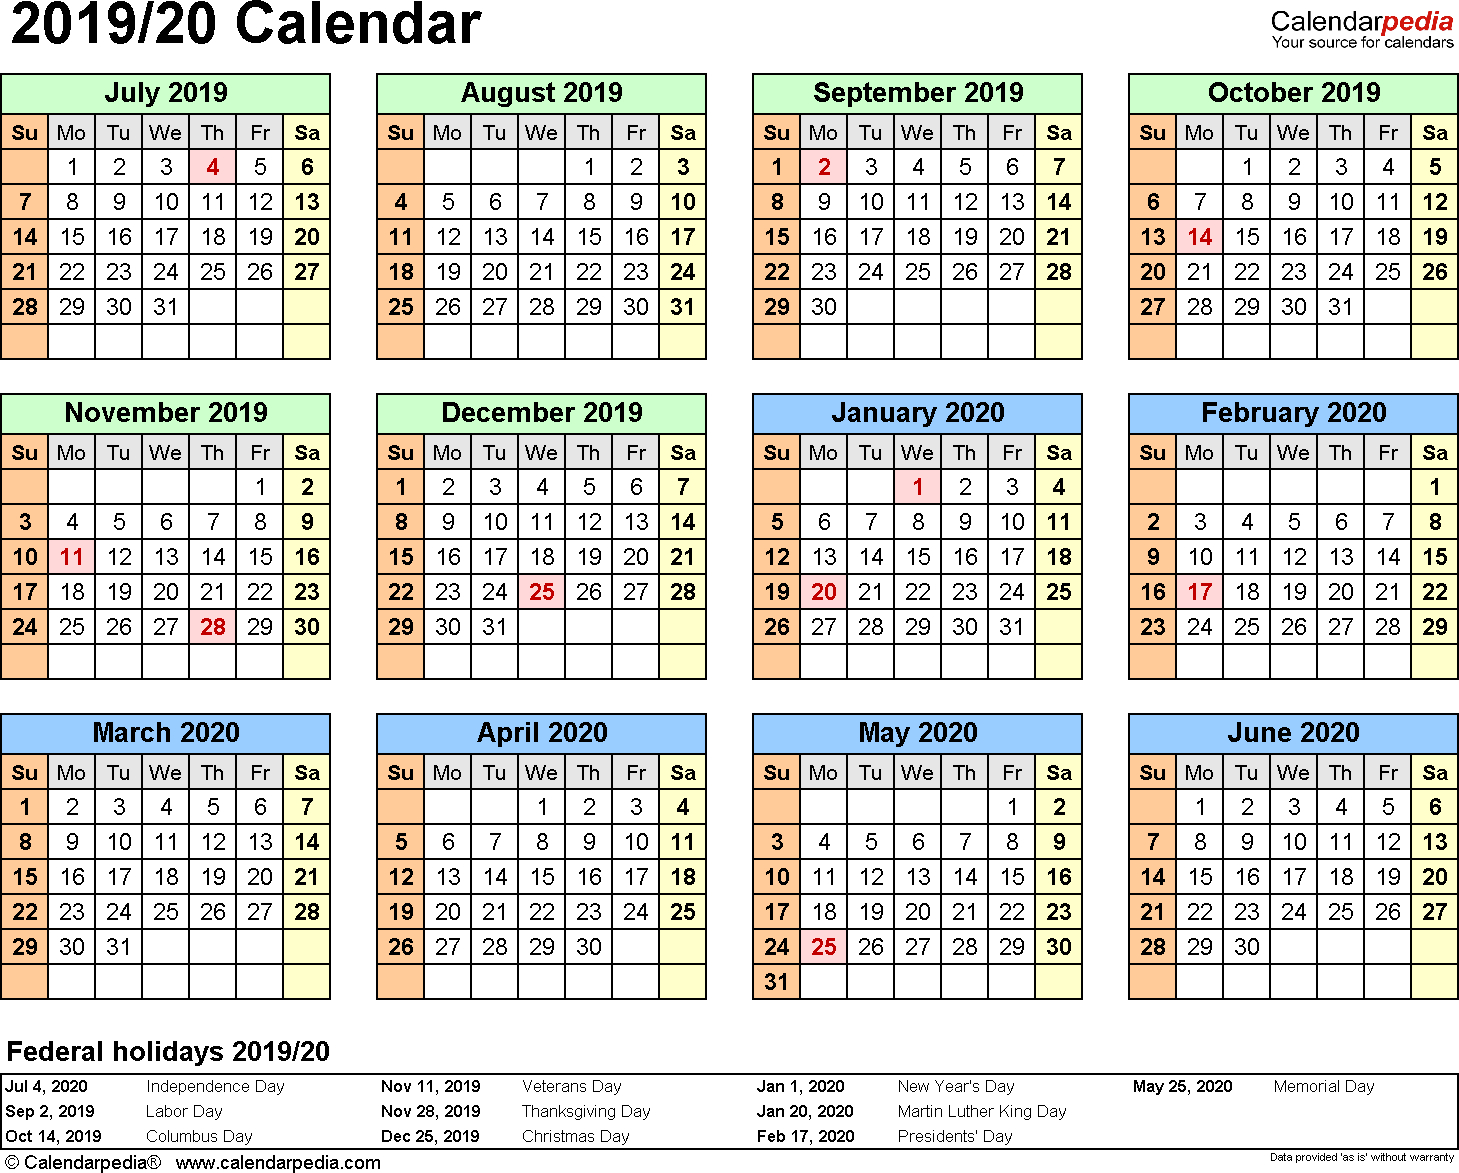 Split Year Calendar 2019/20 (July To June) - Pdf Templates pertaining to July 2019 - July 2020 Calendar Printable Free